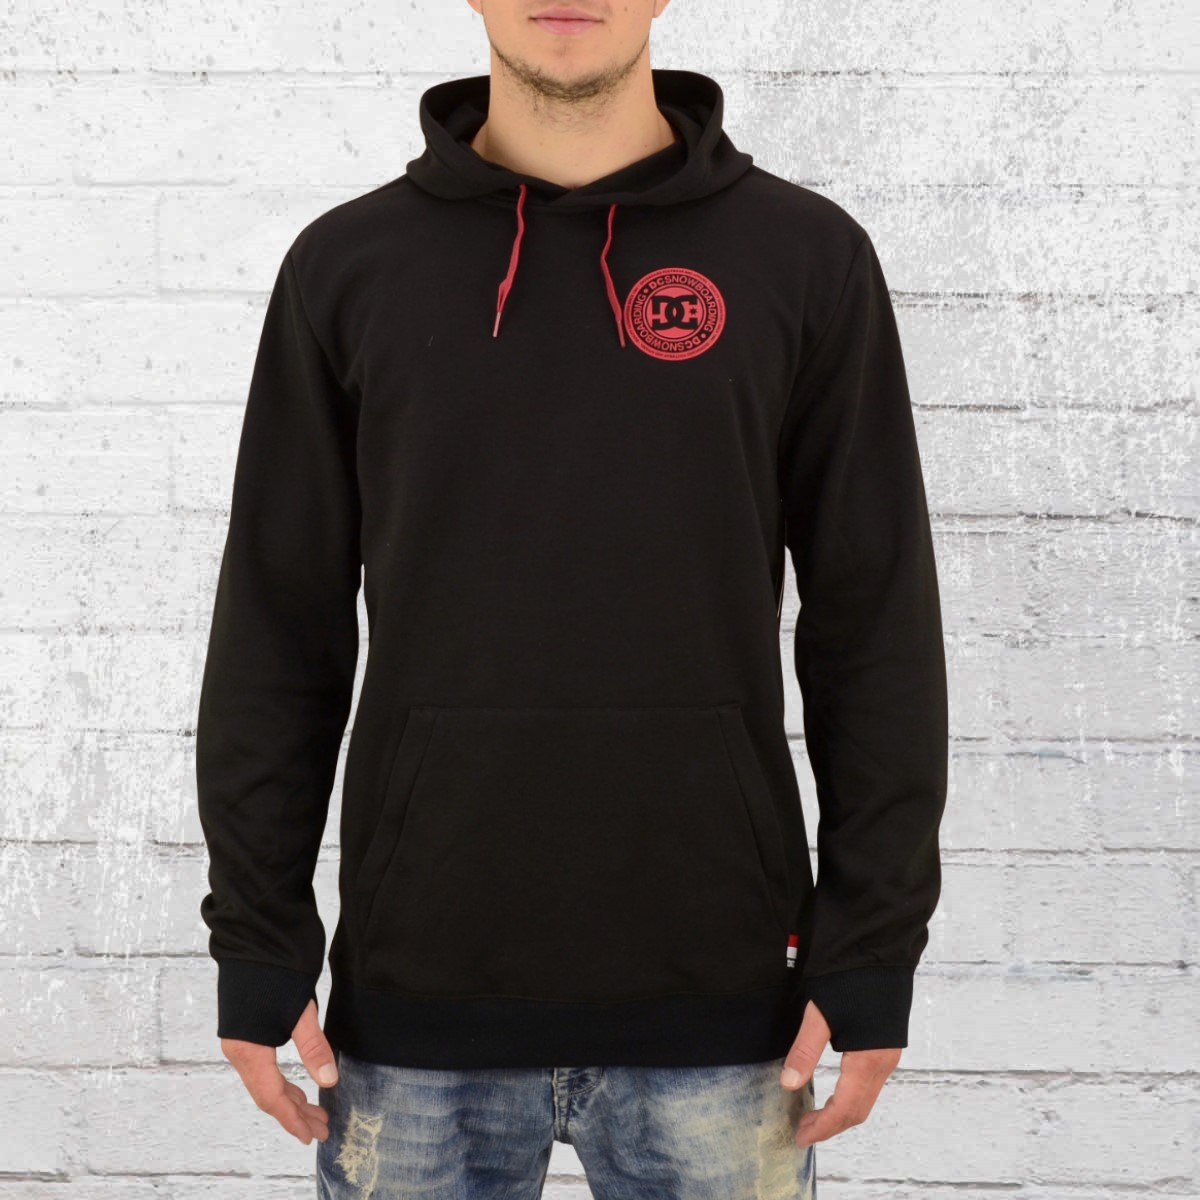 huge discount 43cea 57f6b Order now | DC Shoes Snowboard Hoody Snowstar Mens Hooded ...